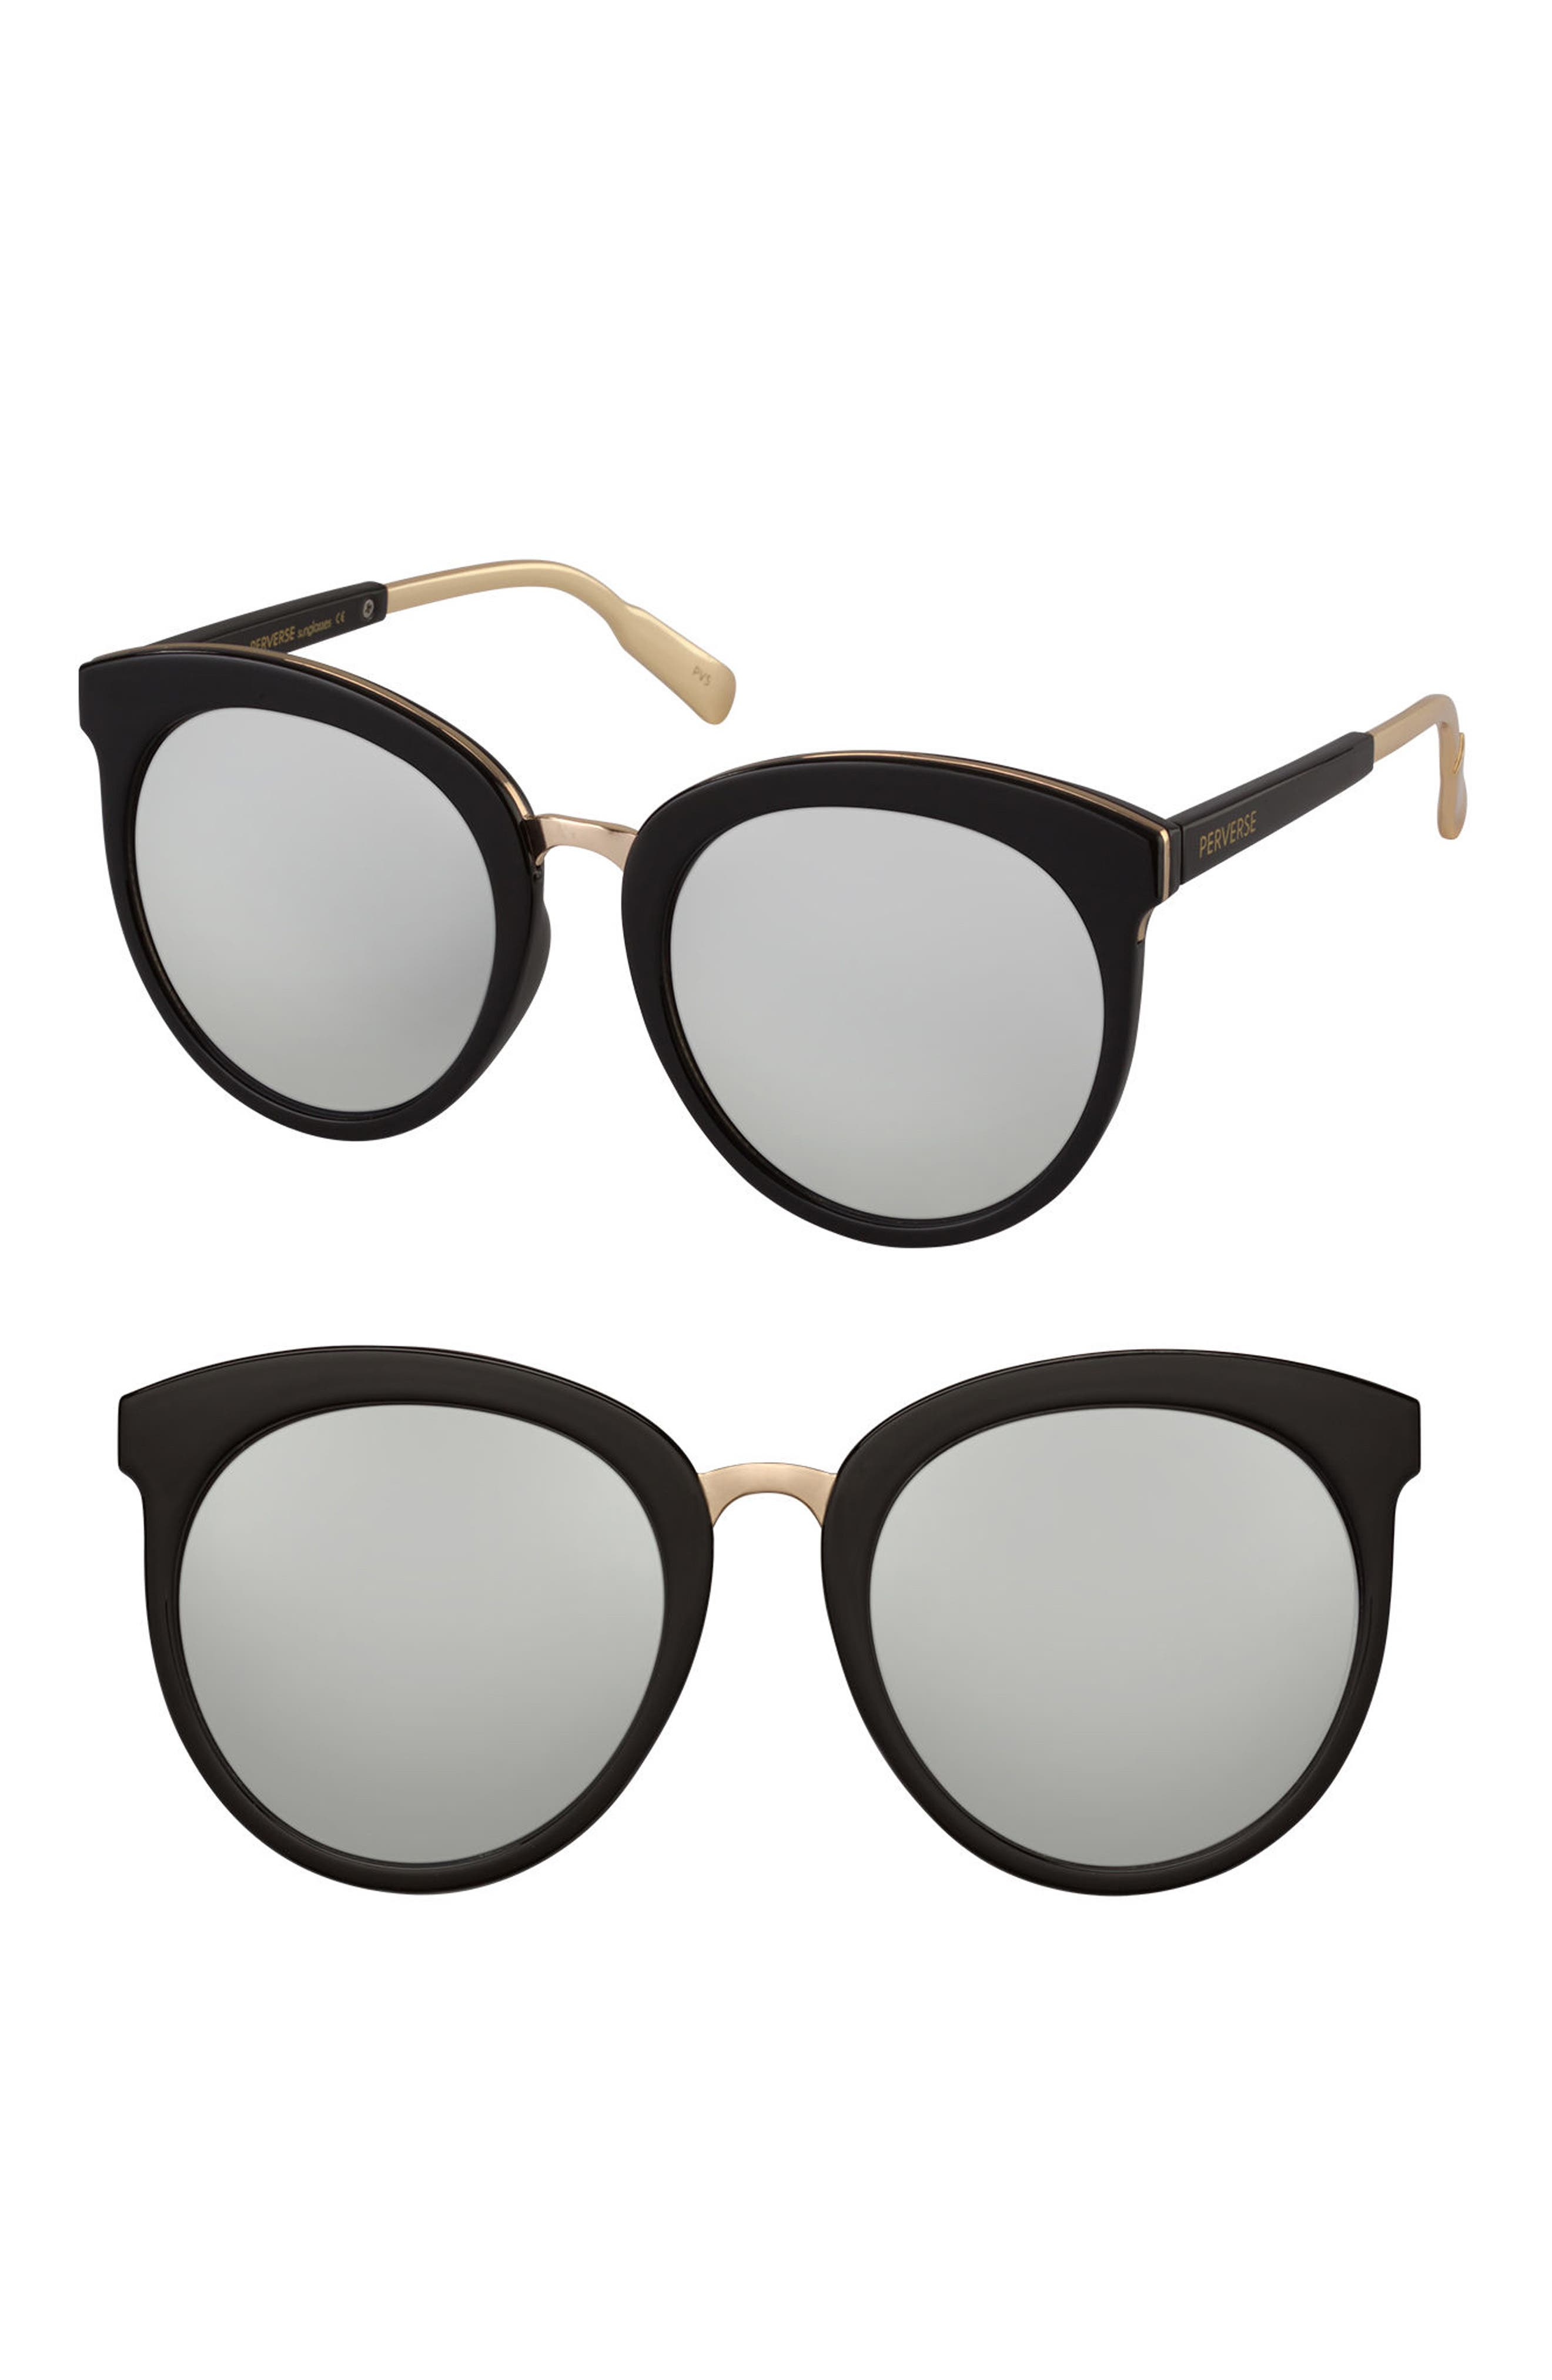 Luxe Sunglasses,                             Main thumbnail 1, color,                             004